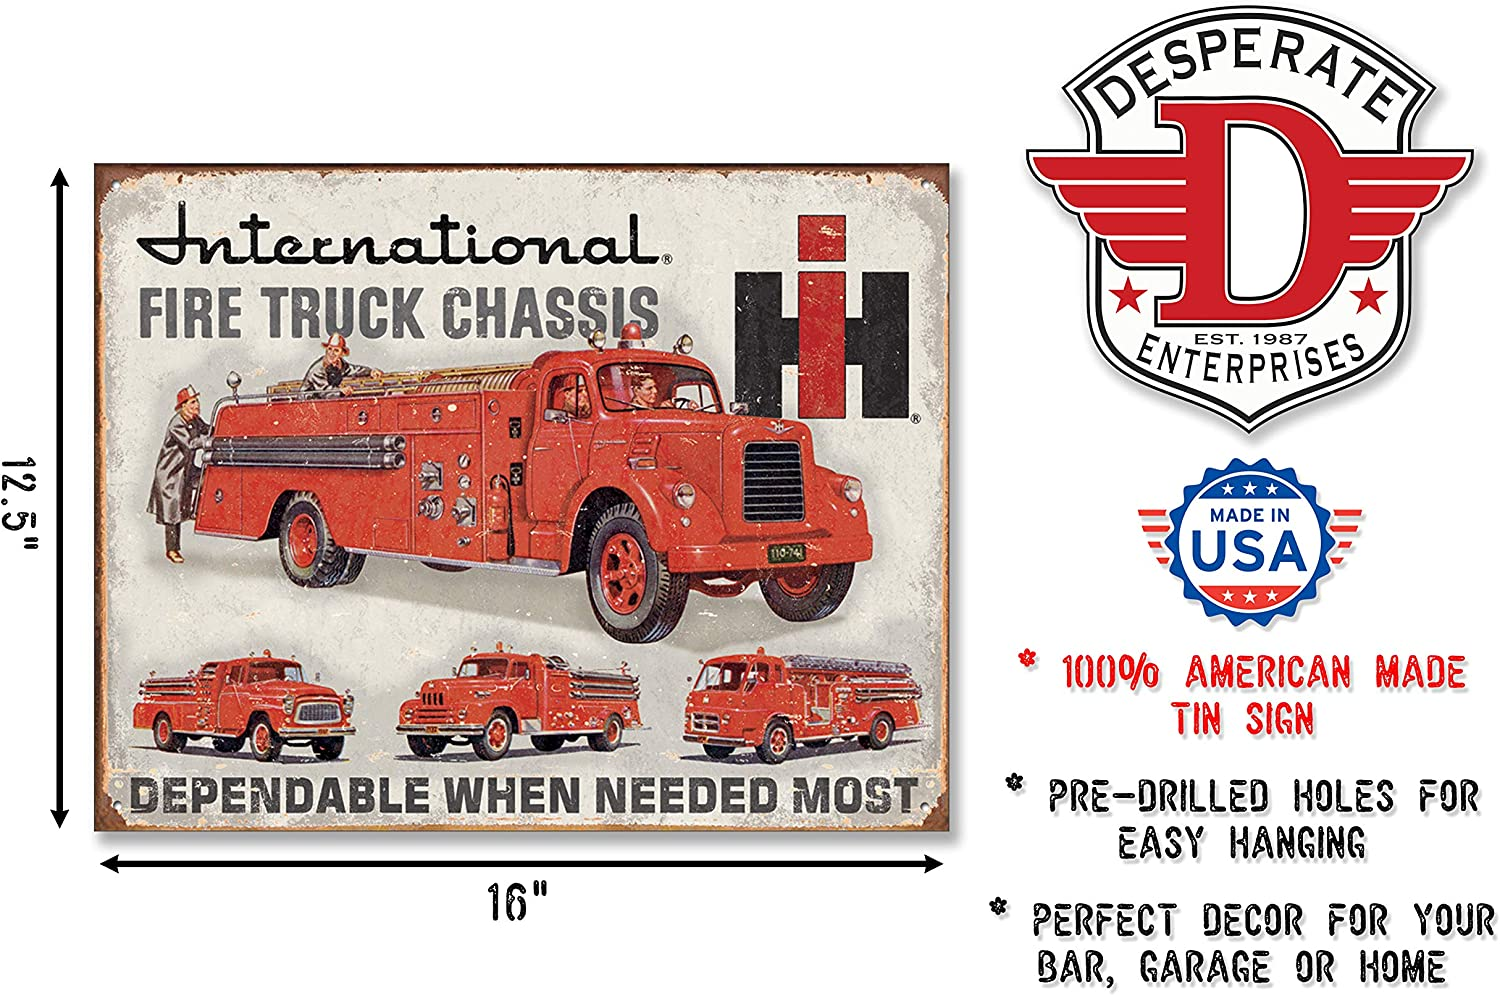 International Fire Truck Chassis Service Garage Disstressed Retro Metal Tin Sign